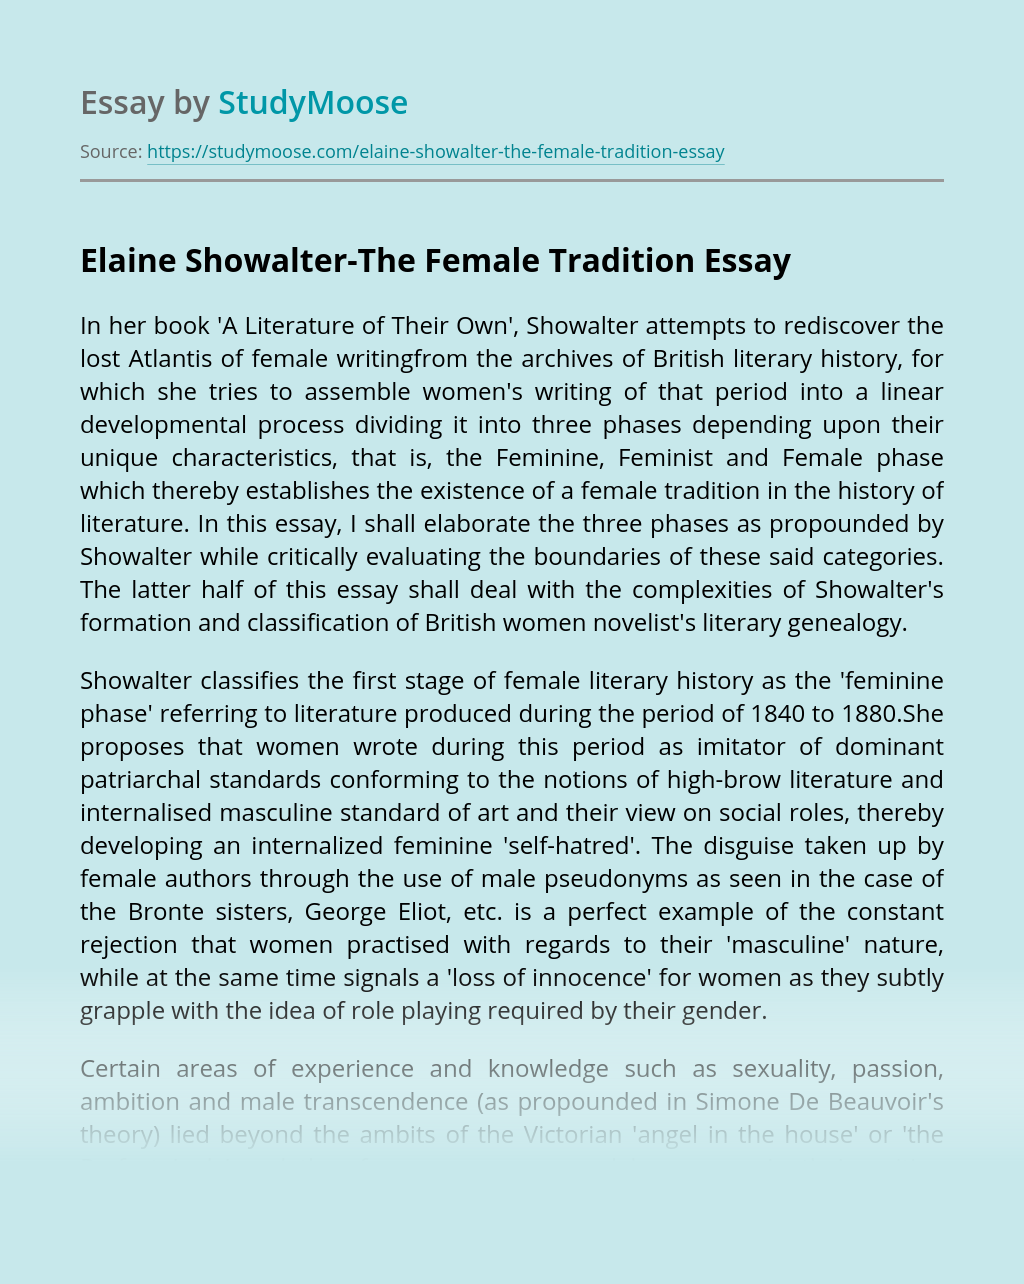 Elaine Showalter-The Female Tradition